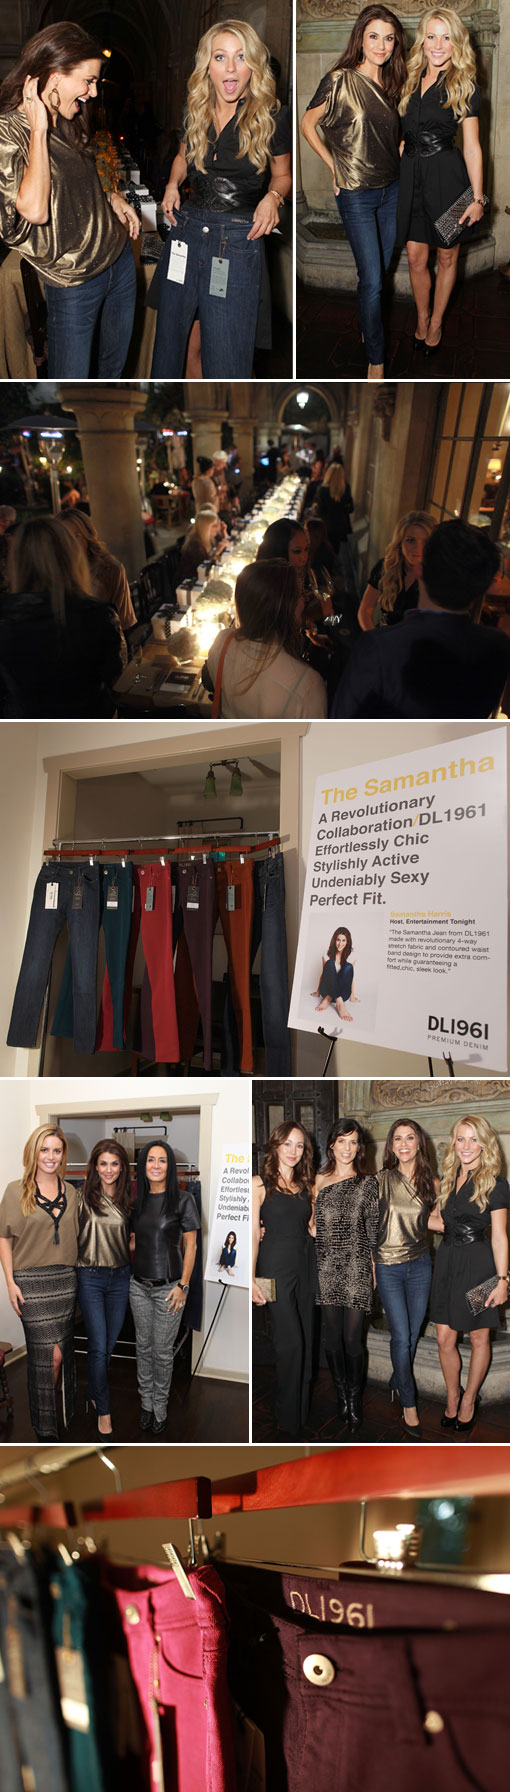 DL1961's Samantha Jean Launch Party and Collaboration